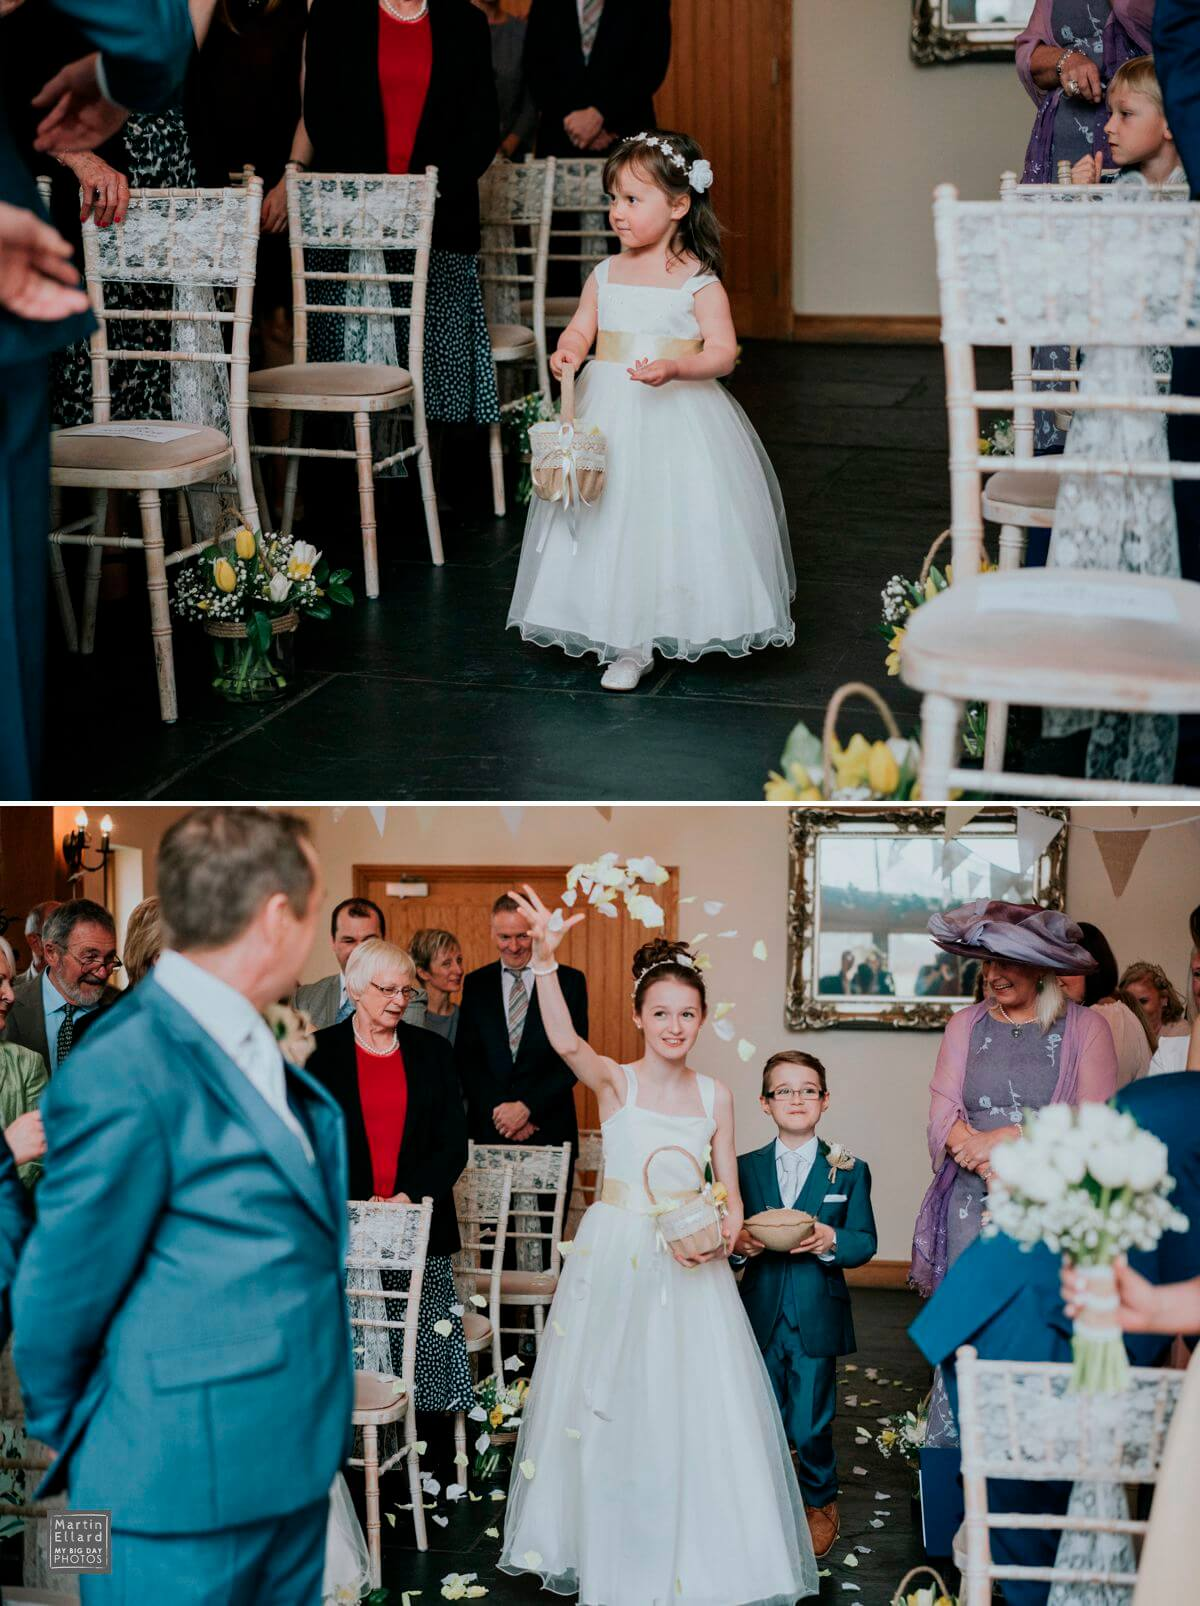 getting married at Oldwalls Gower